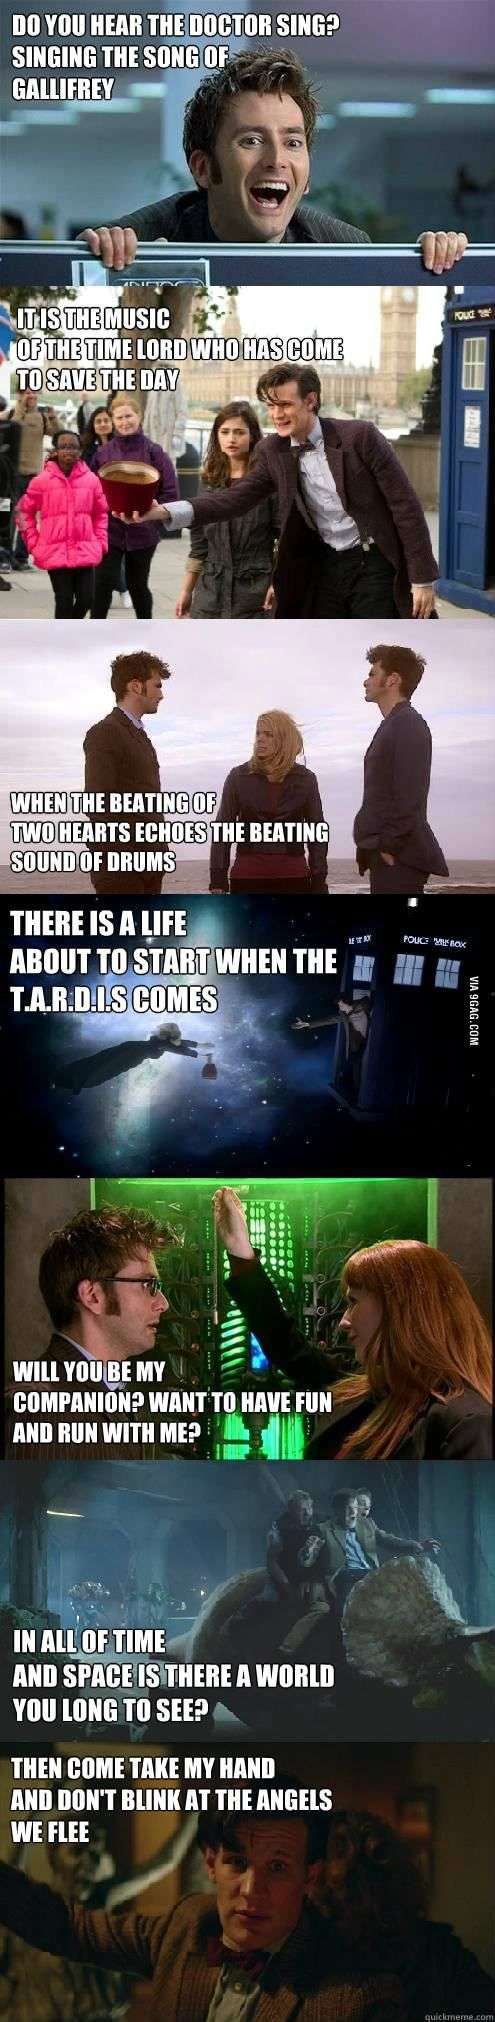 I LOVE THIS A LOT <- I may have sung along with the entire thing. Or until I got mixed up because I forgot how part of it went. LES MIS MEETS DOCTOR WHO.